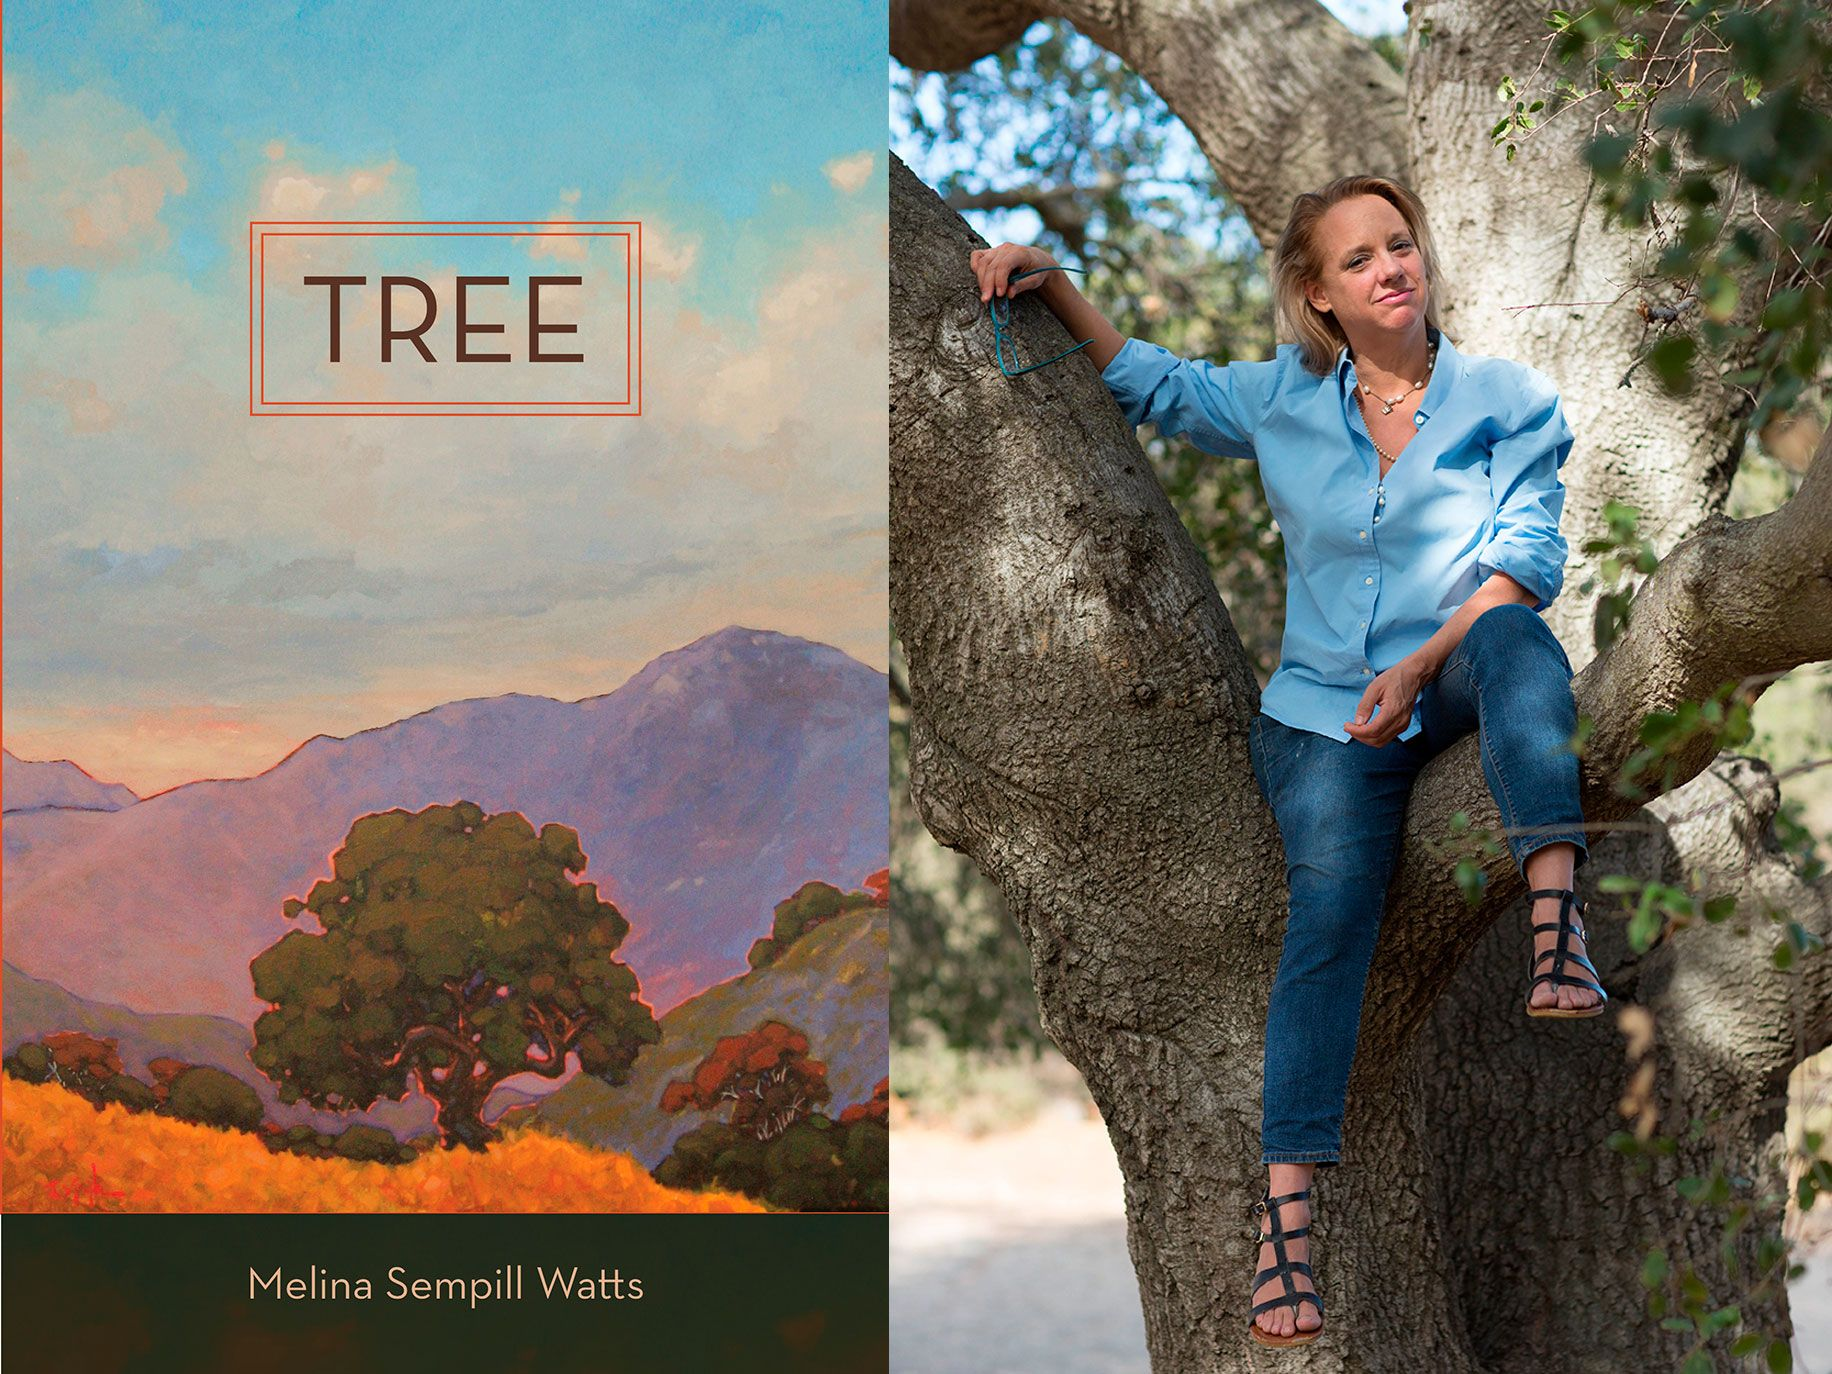 """Tree"" author Melina Sempill Watts."